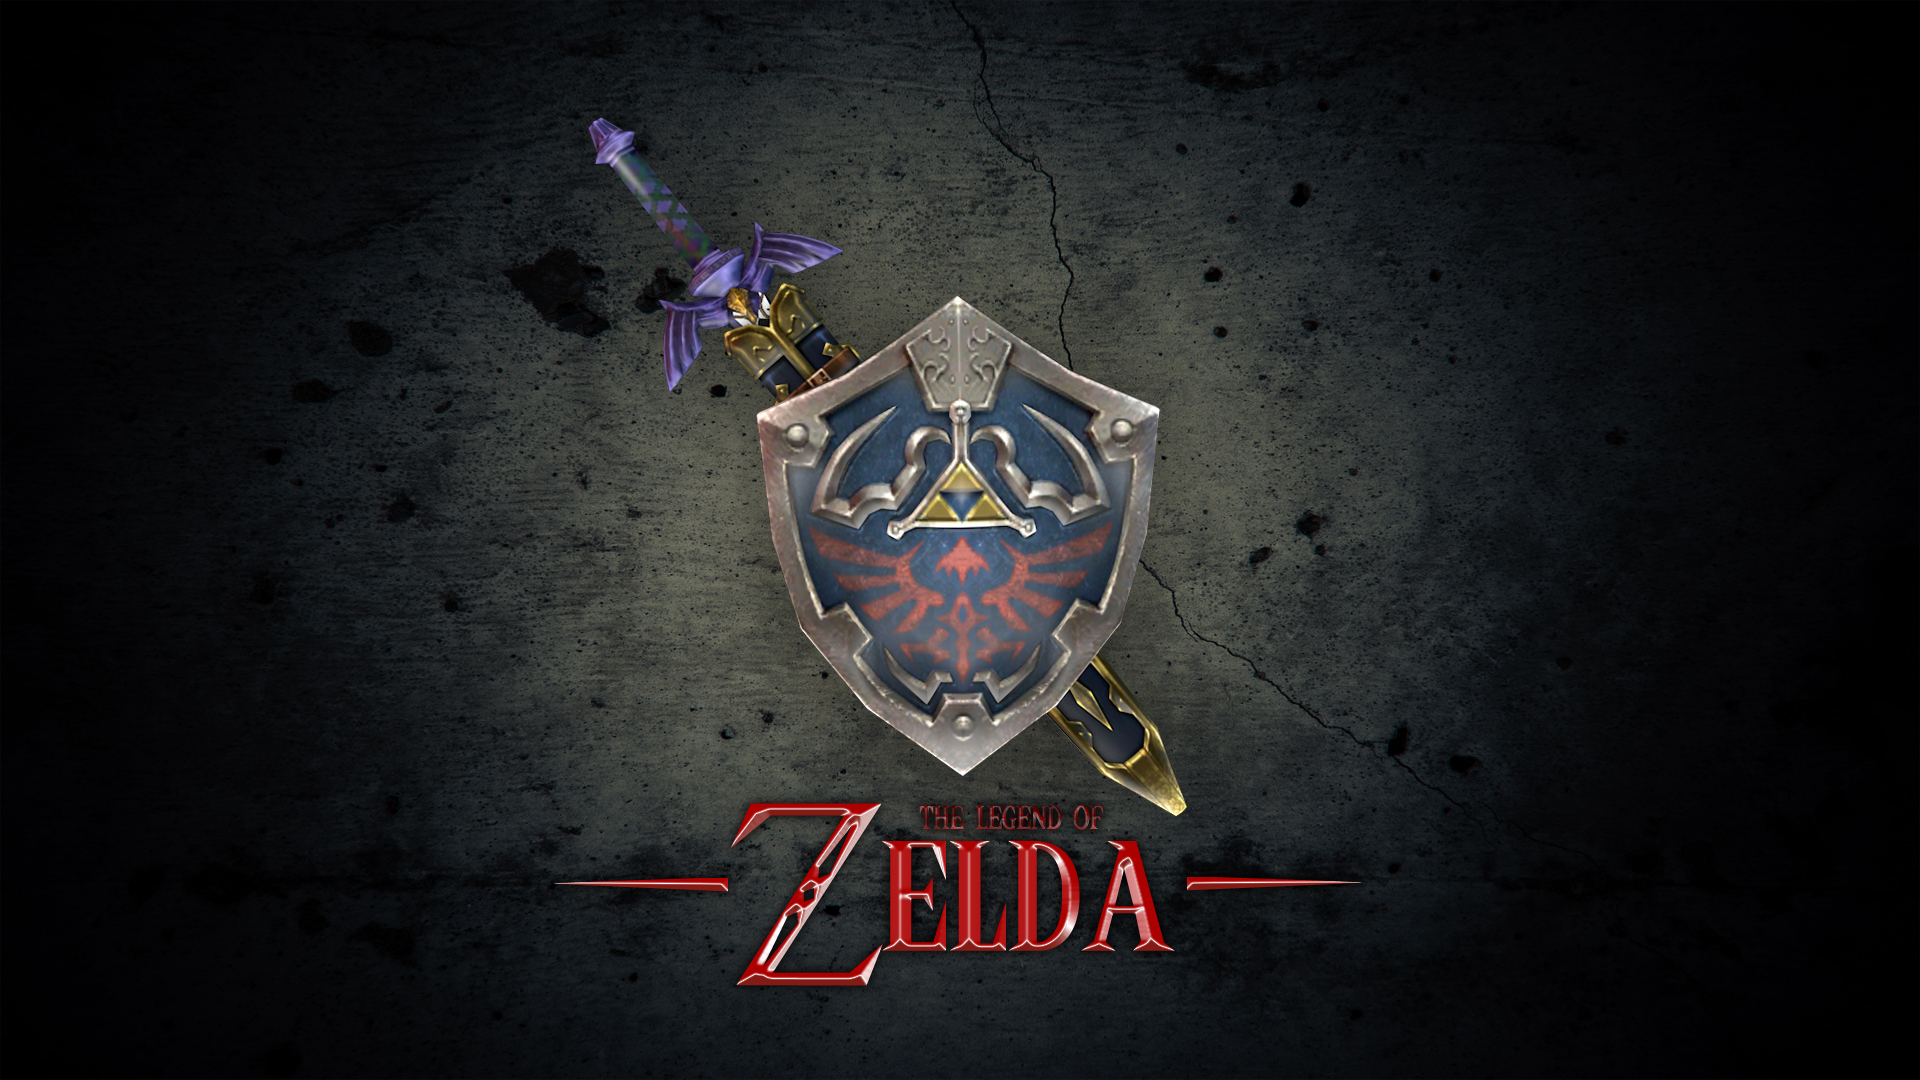 Hd wallpaper zelda - The Legends Of Zelda Swords Logo Hd Wallpapers 1080x1920px Xzmuqc13